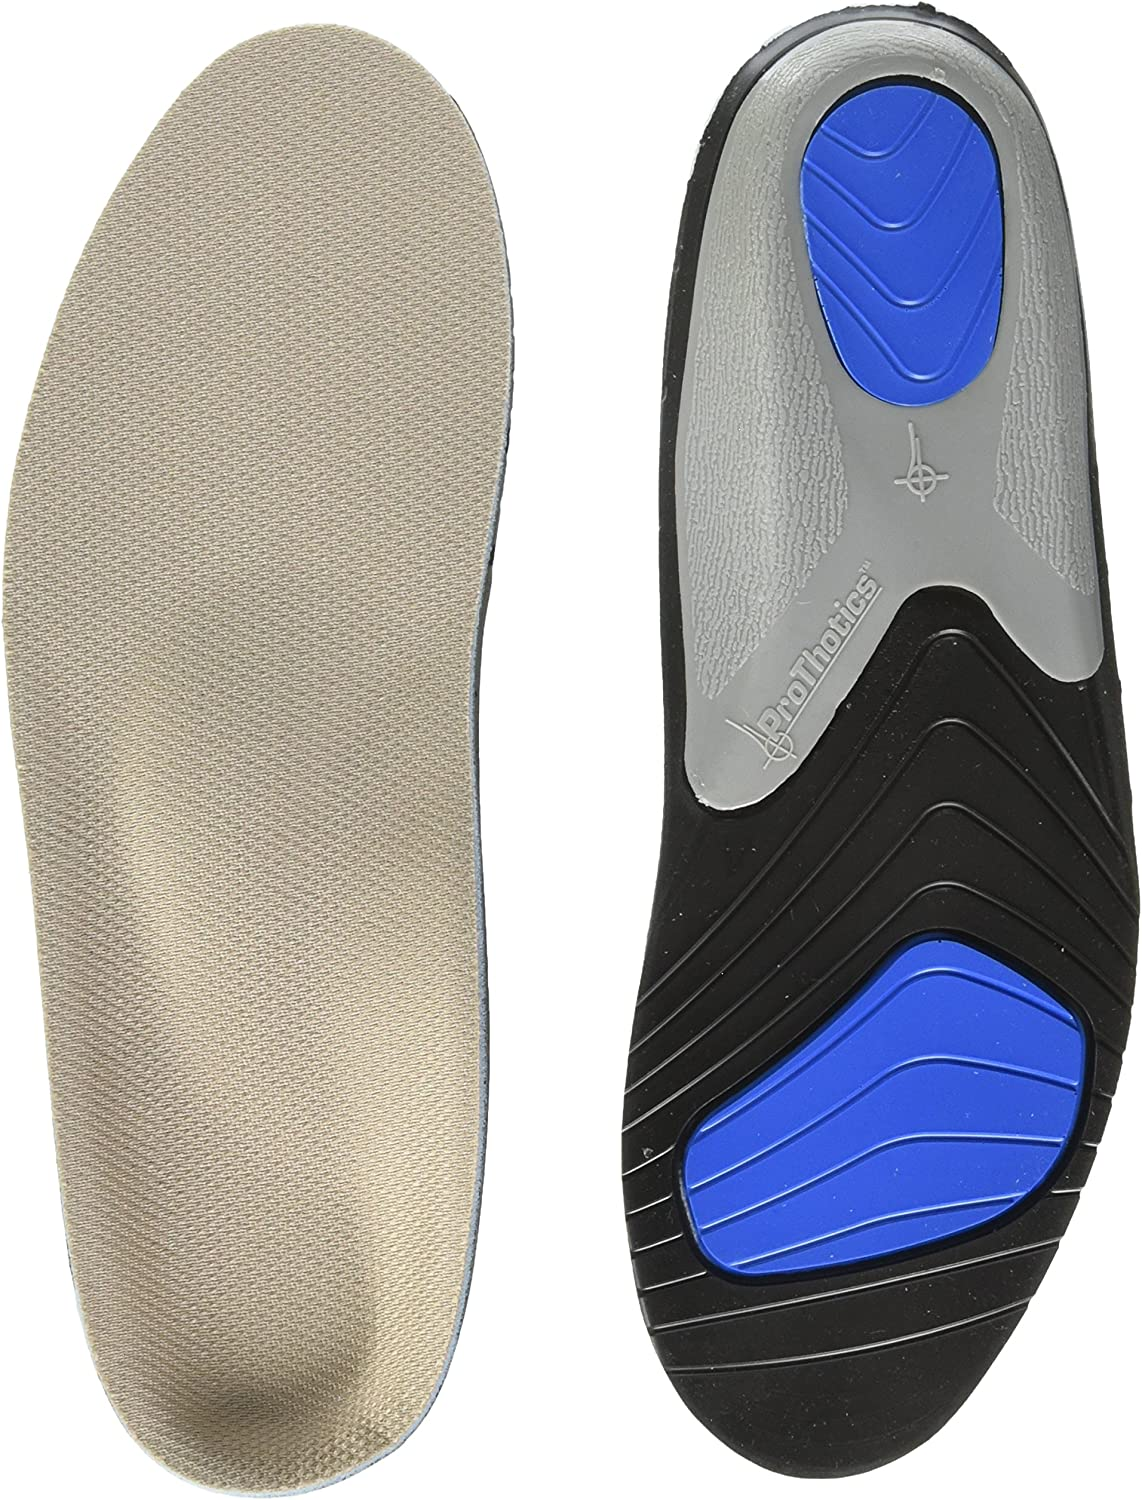 Diabetic Or Sore Arthritic Feet! Aching - Mn The Original Foot Pain Relief Insole for Plantar Fasciitis Swollen 5-6.5 7-8.5 B- Wm Prothotic Pressure Relief Insoles